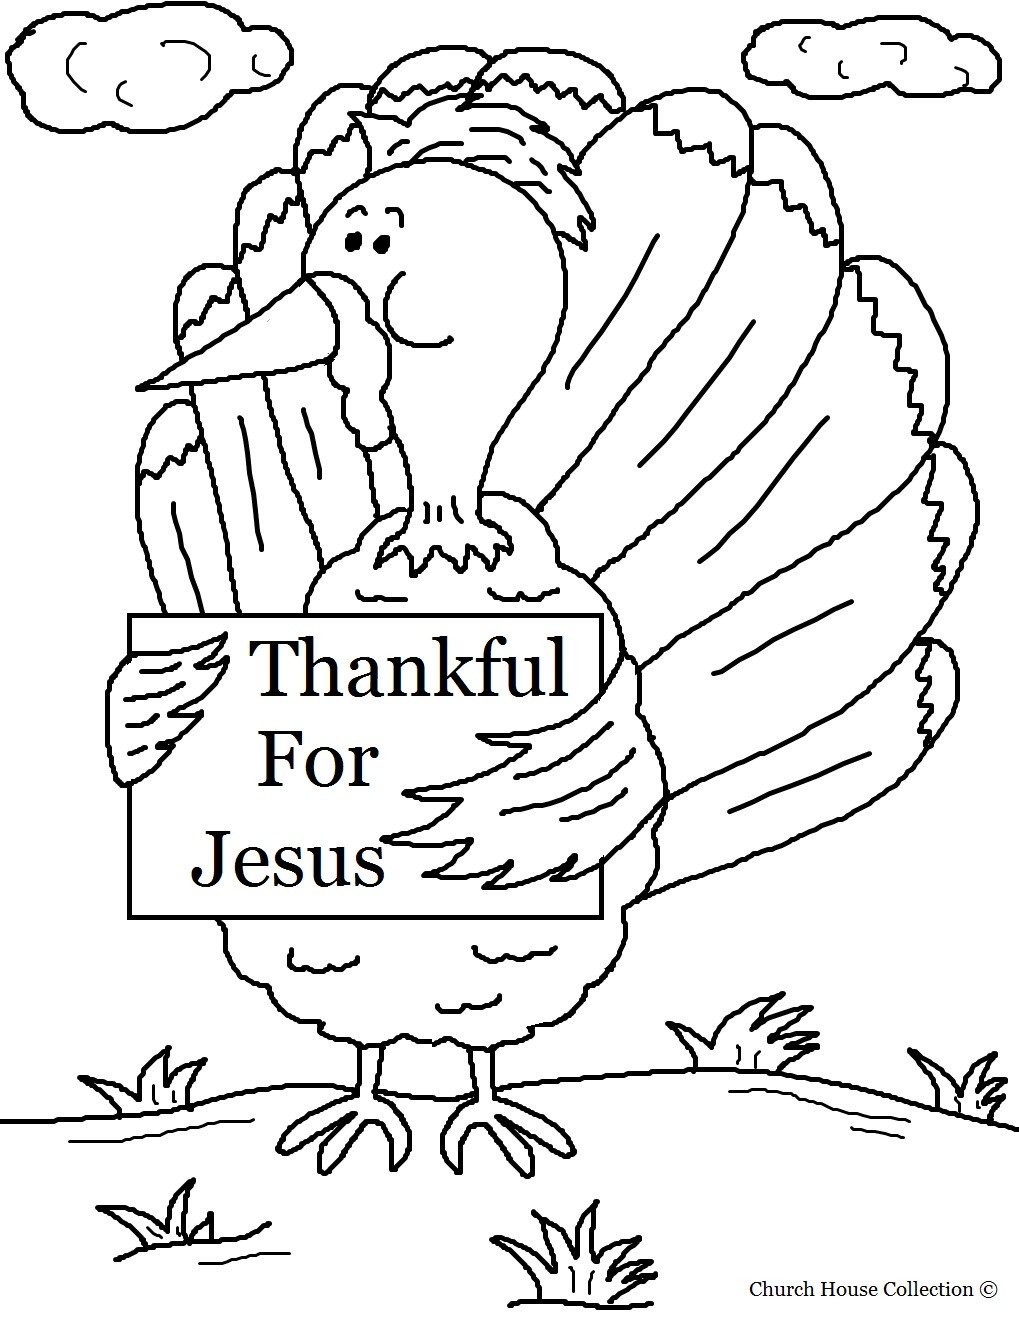 Religious Thanksgiving Coloring Pages For Kids  Church House Collection Blog Turkey Holding Sign